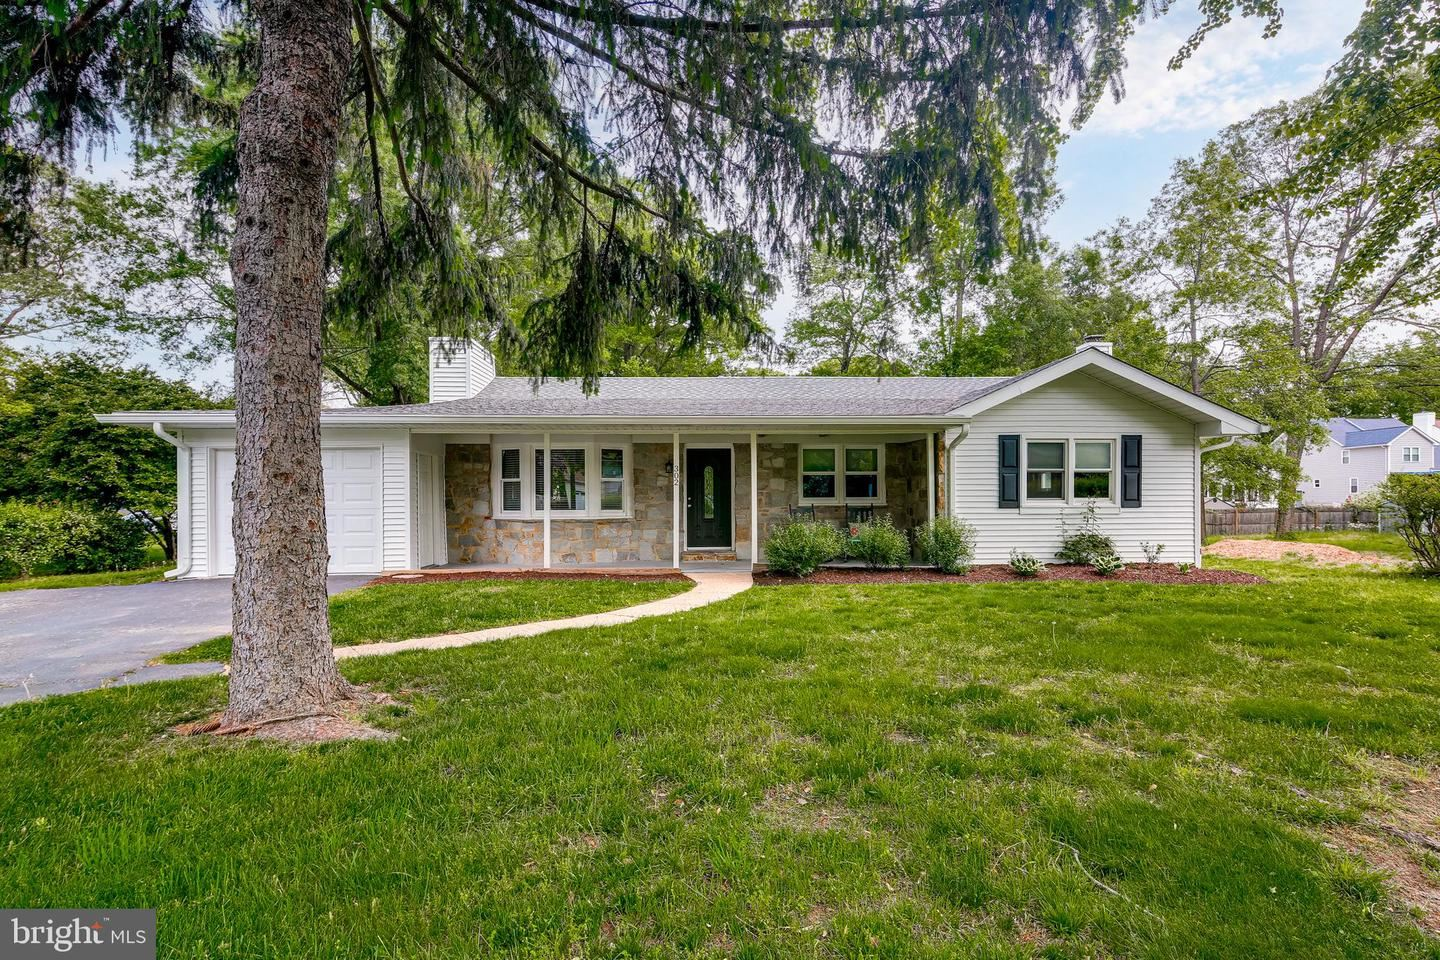 302 GORDON AVE, Severna Park, MD 21146 - MLS#: MDAA467458